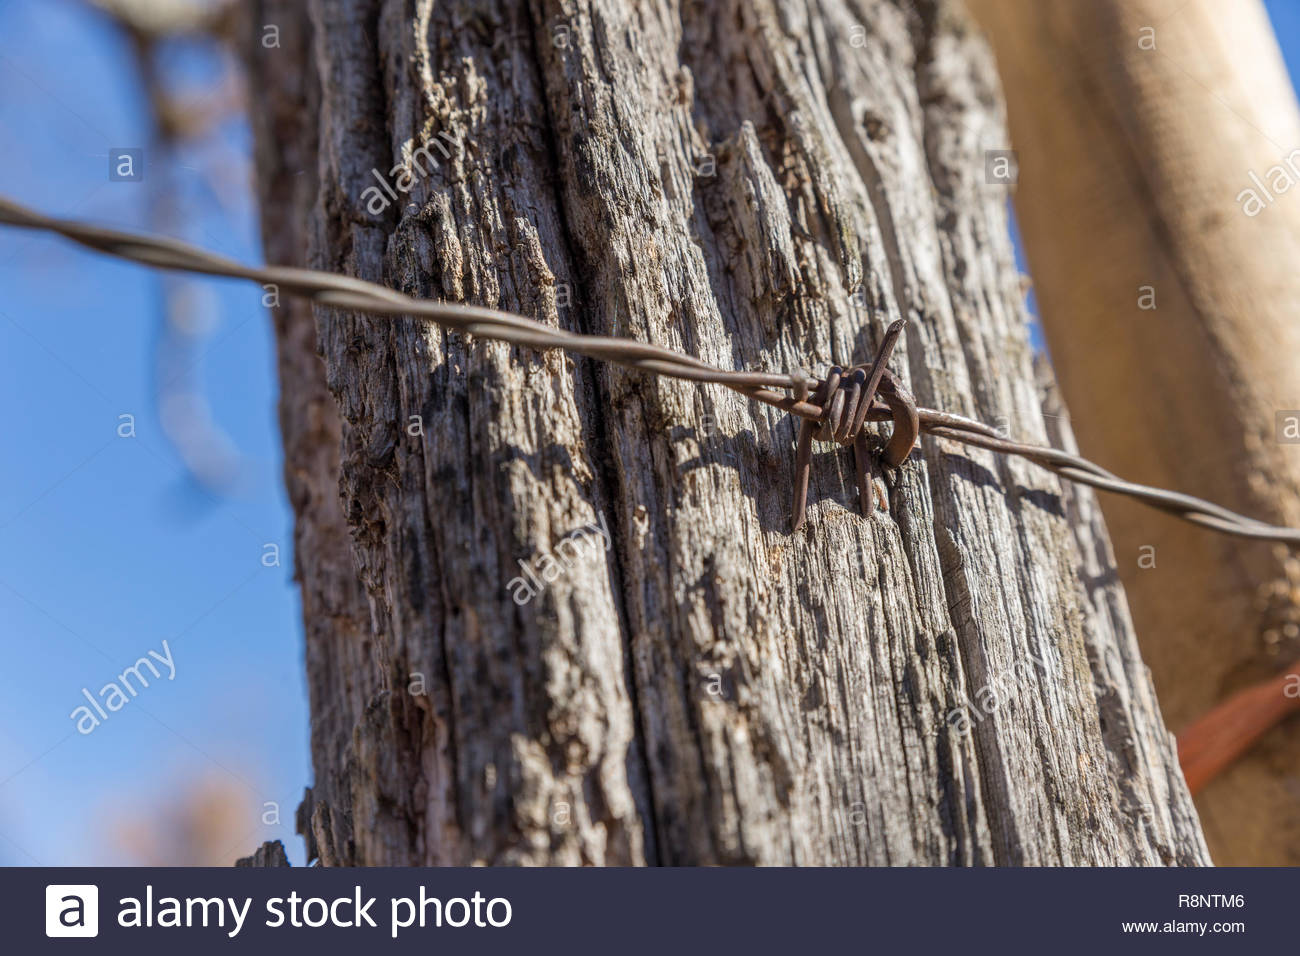 Barbed wire fence in the forest - Stock Image